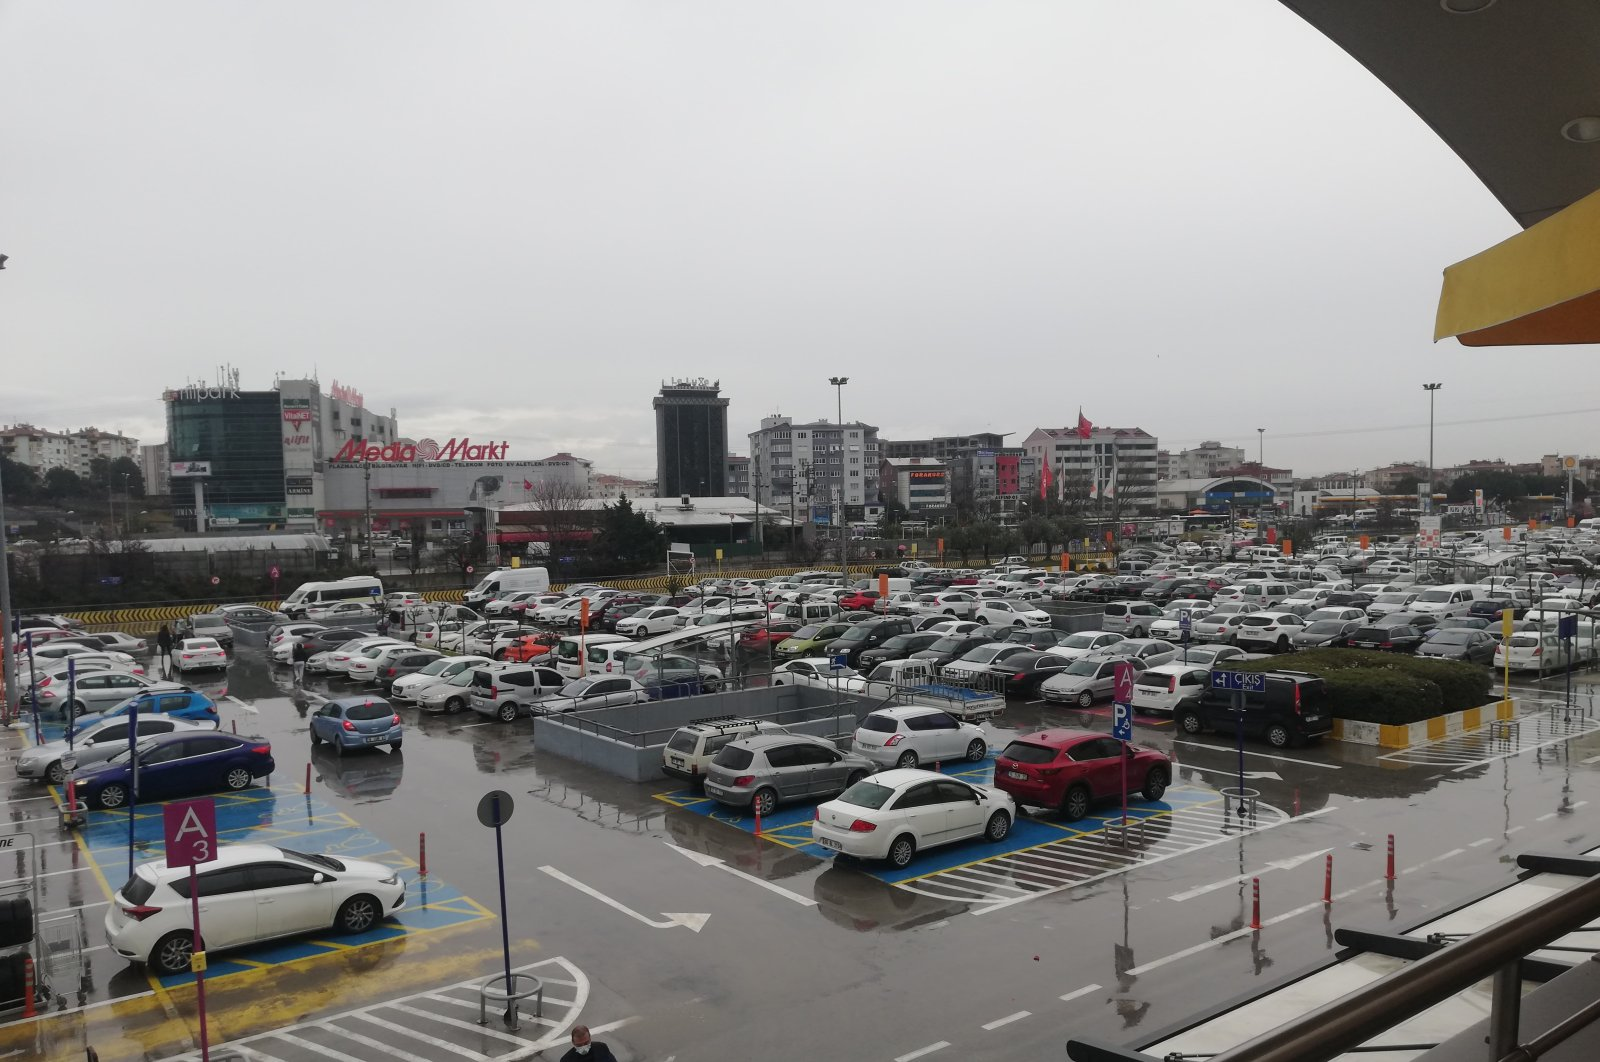 A shopping mall's parking lot is seen under rainfall in Northwestern Bursa province on March 6, 2021. (IHA Photo)